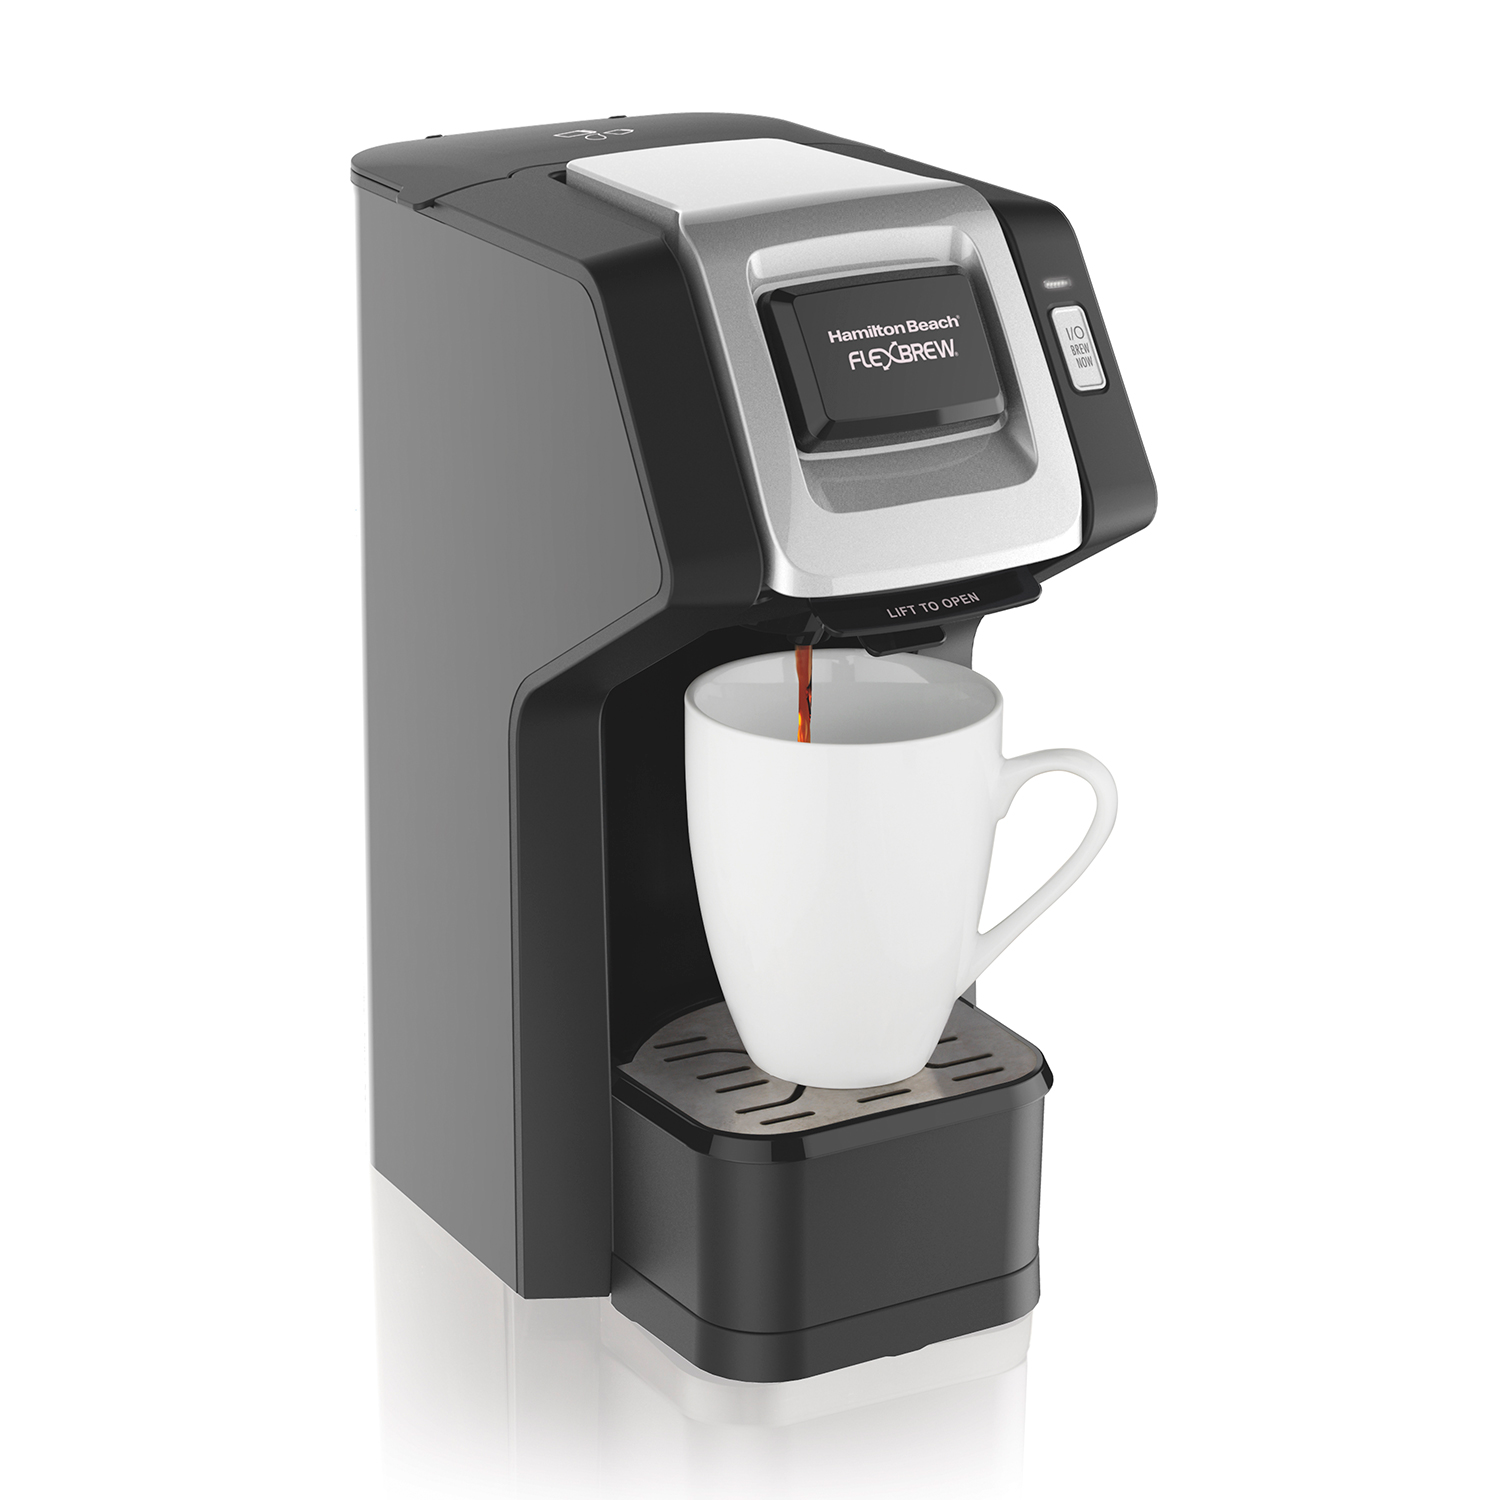 FlexBrew® Single-Serve Coffee Maker, Black & Silver (49974)